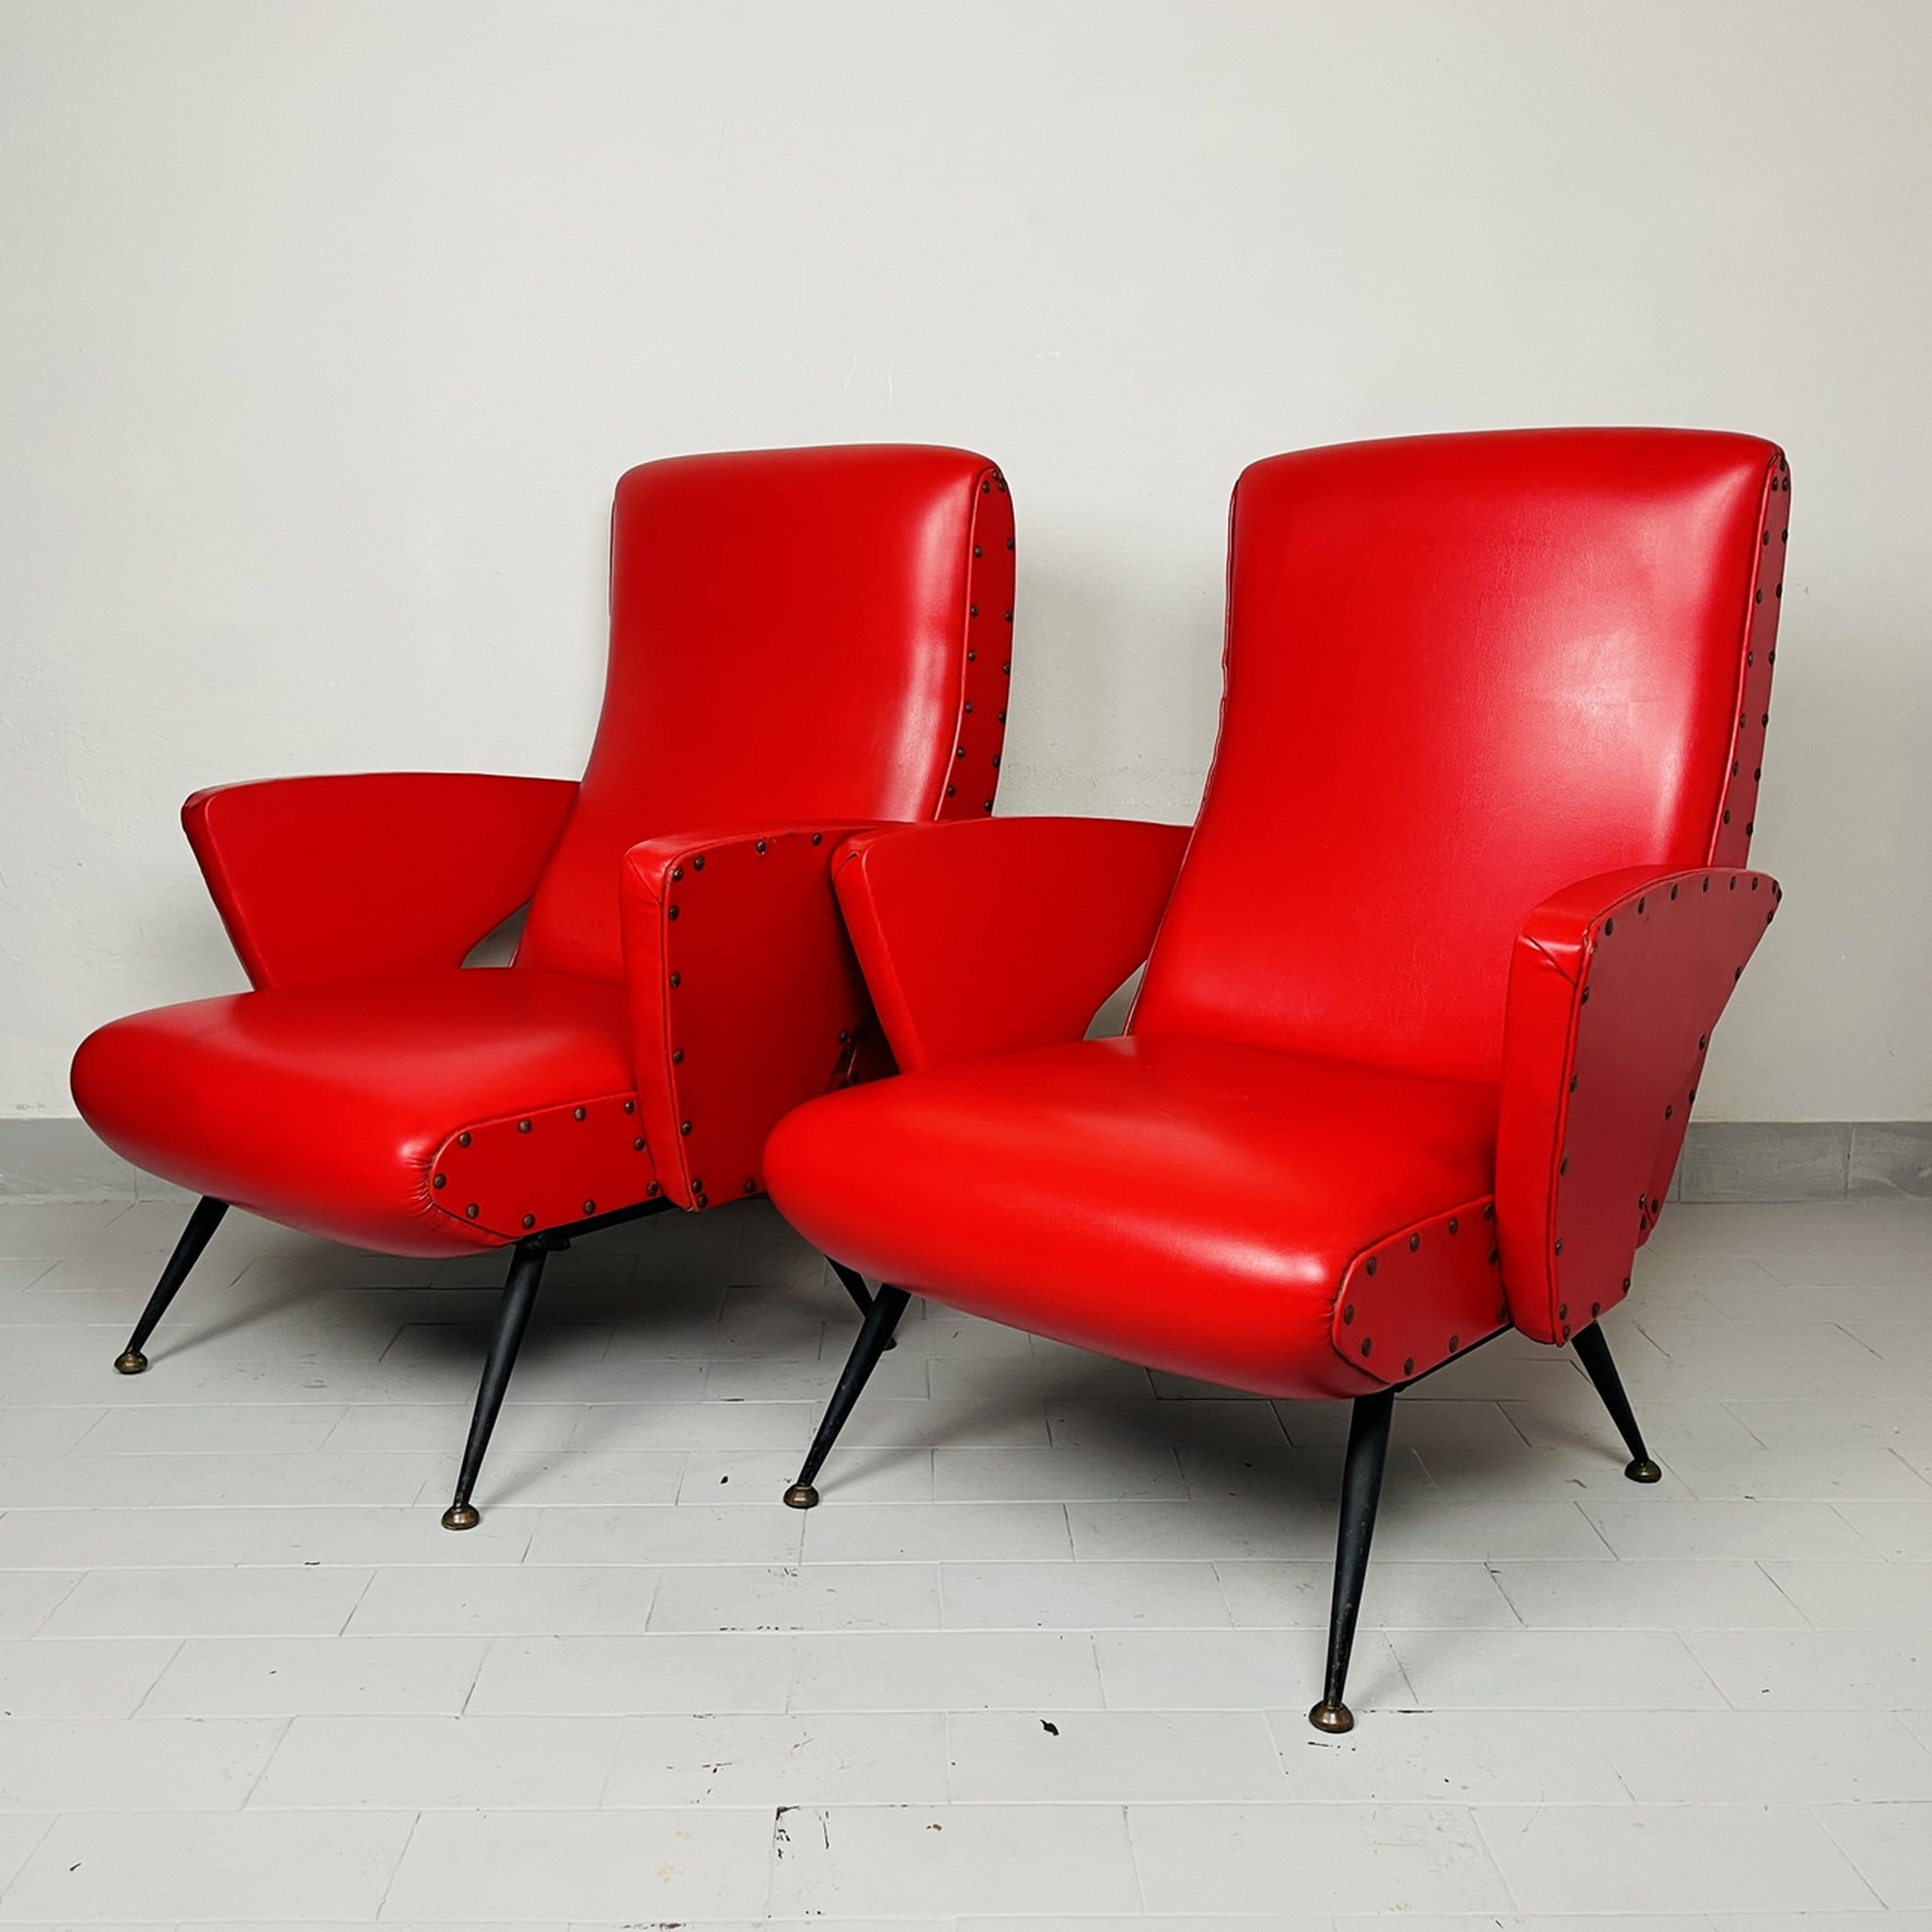 Set of 2 vintage red lounge chair Italy 1950s